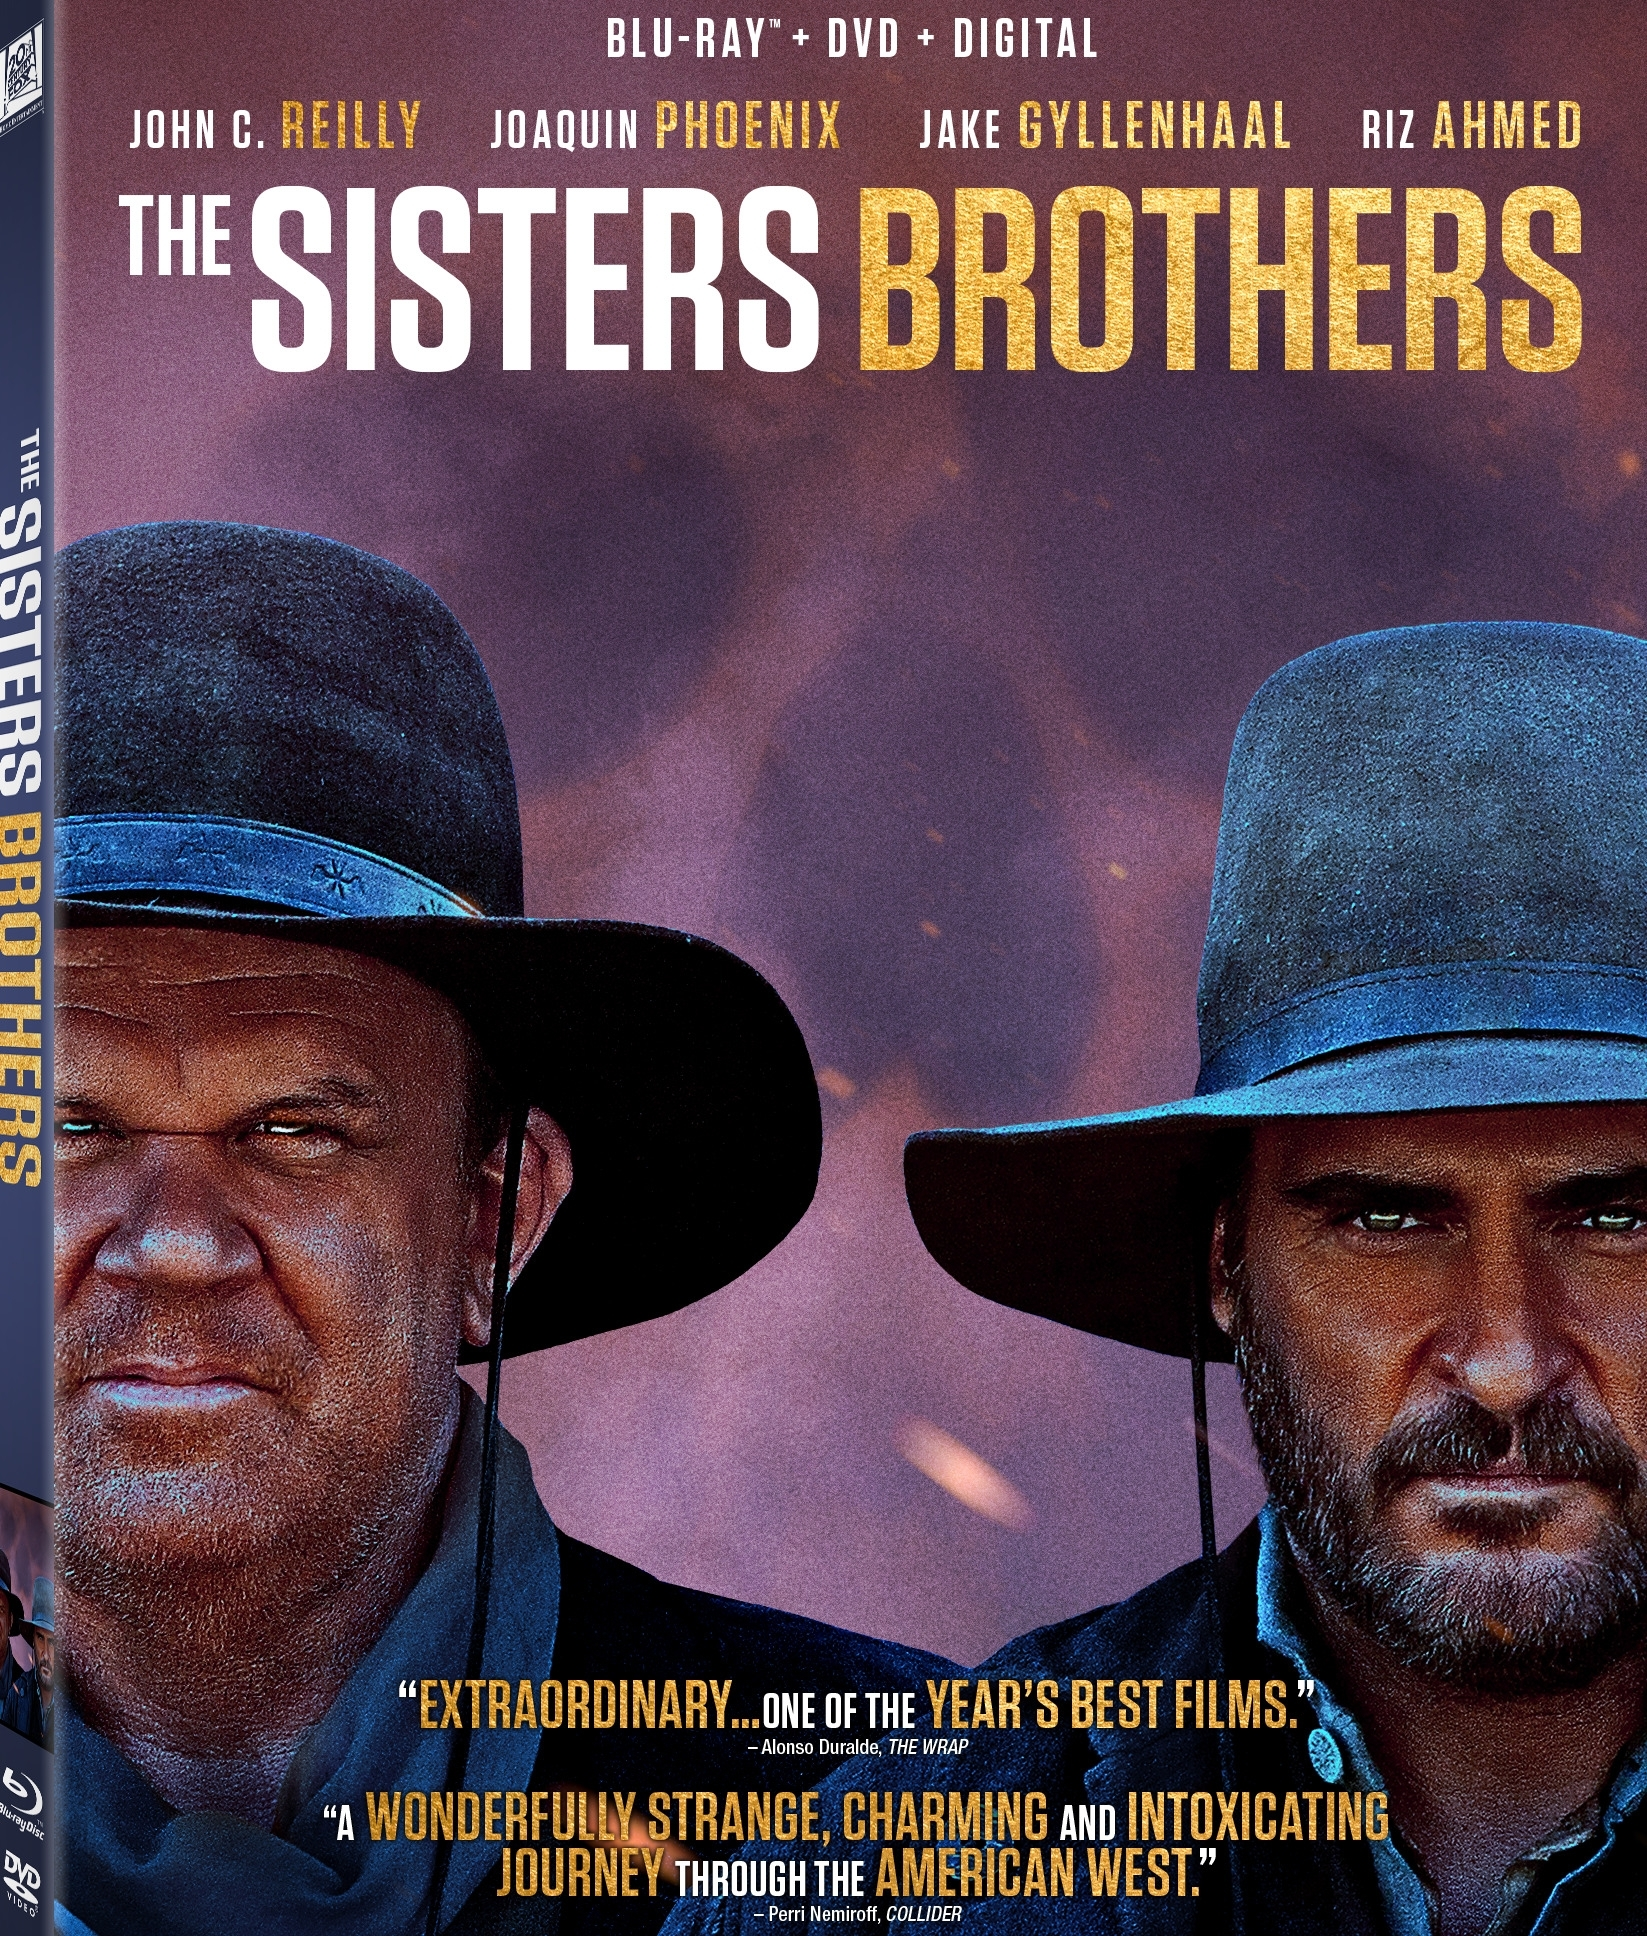 The Sisters Brothers (2018) poster image